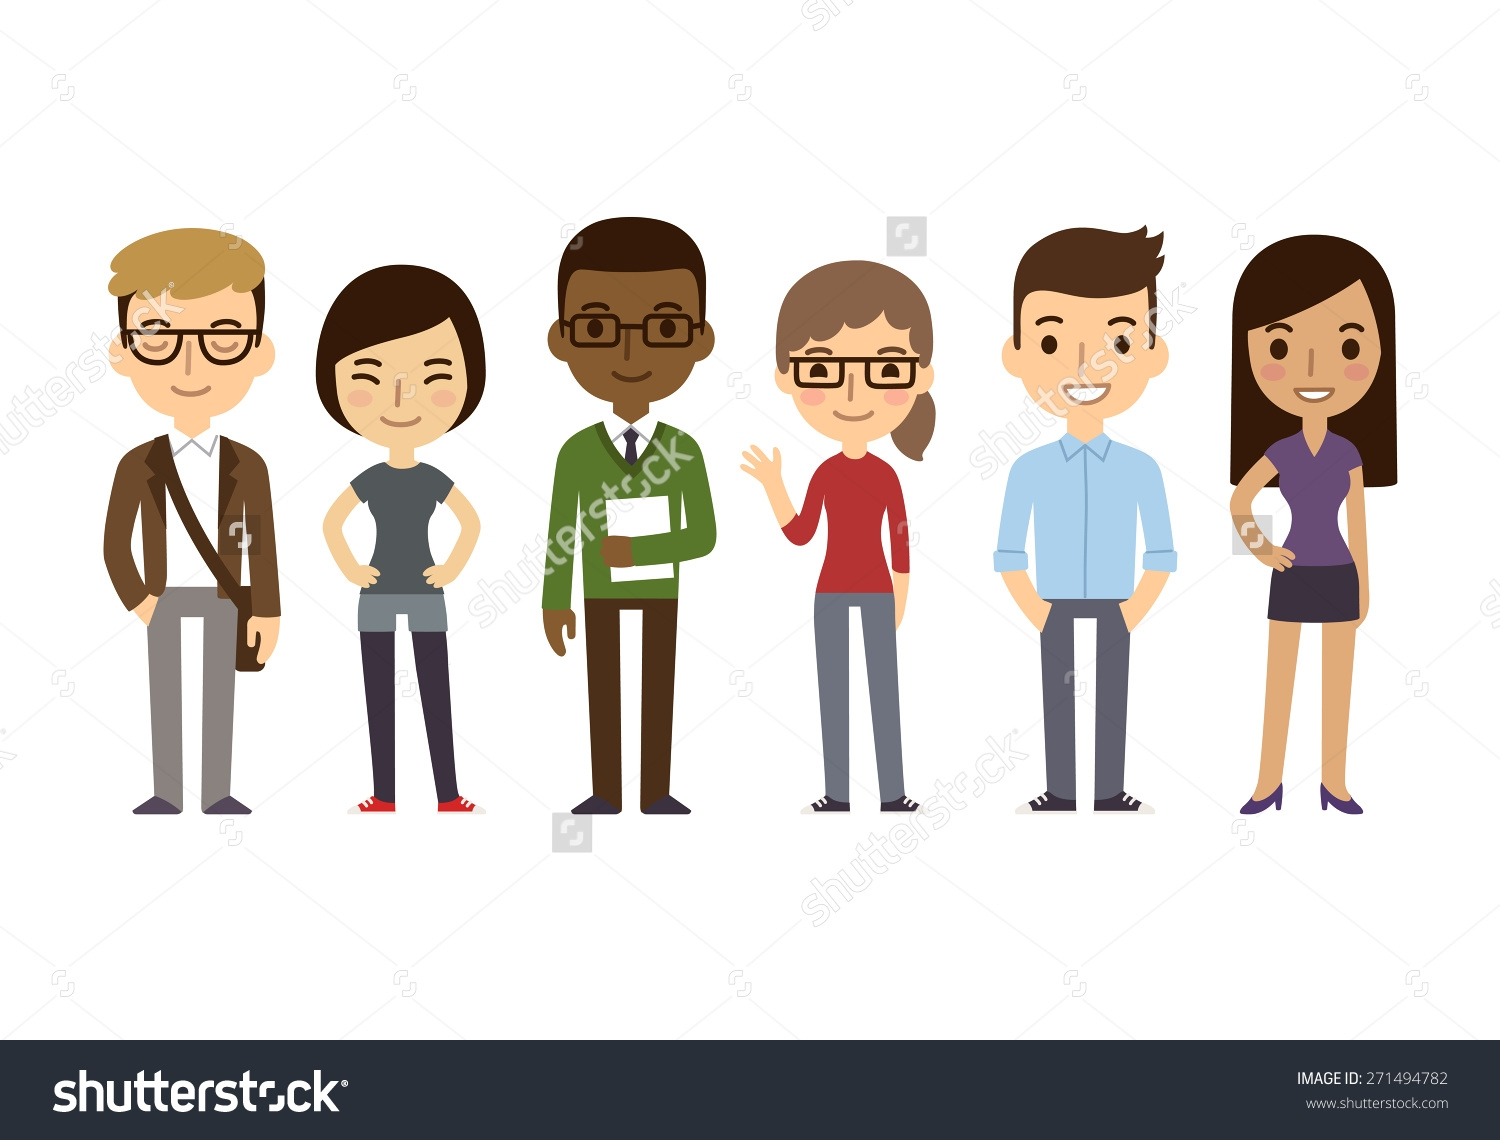 University Student Clipart Collection #419601.